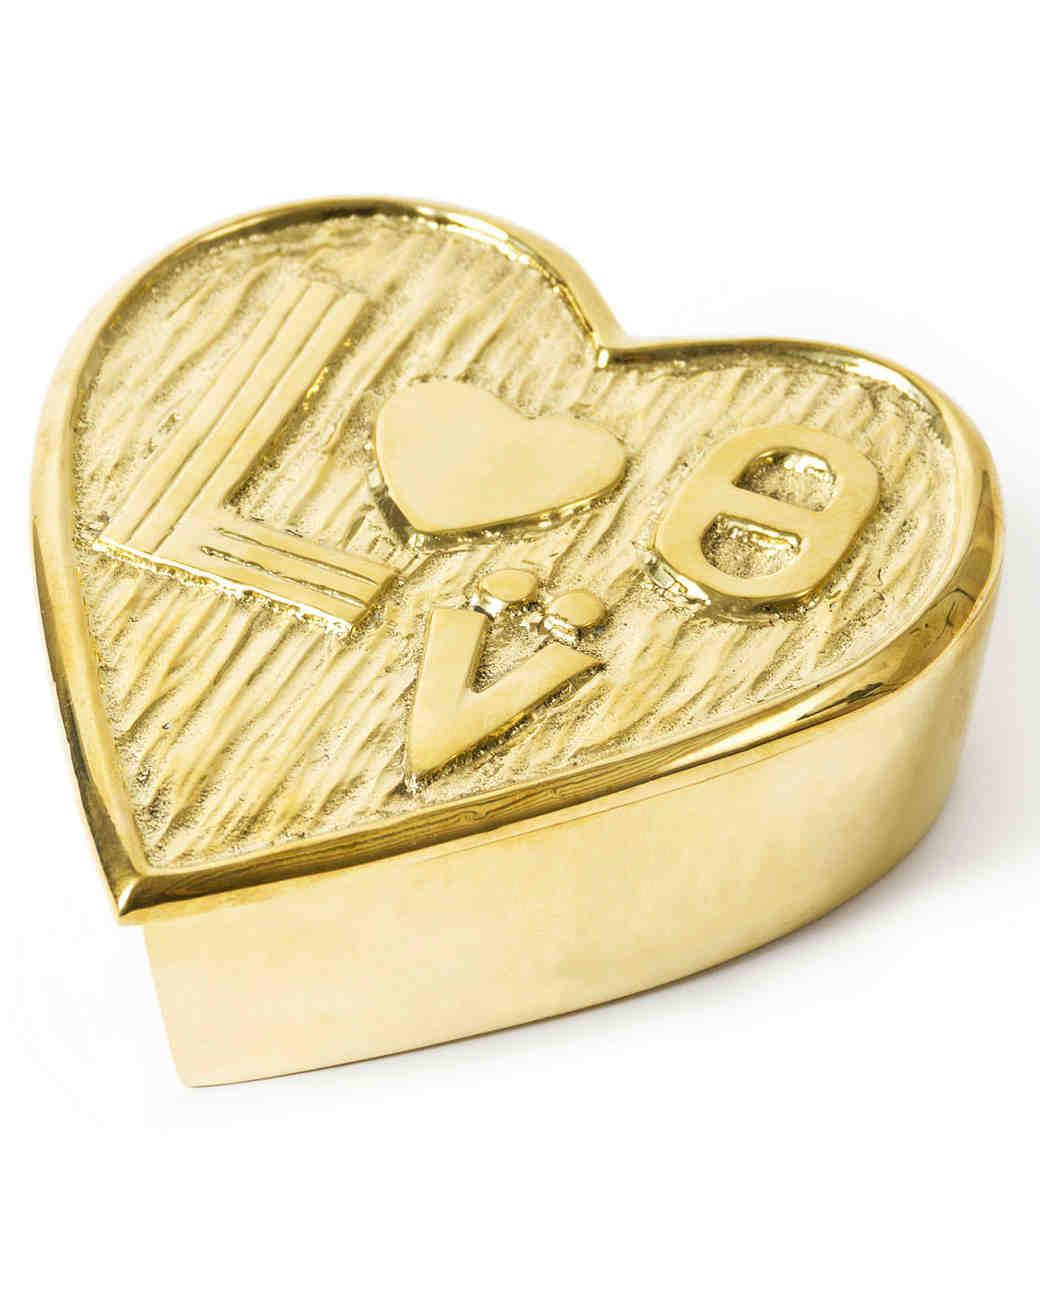 unique-ring-box-love-heart-0316.jpg